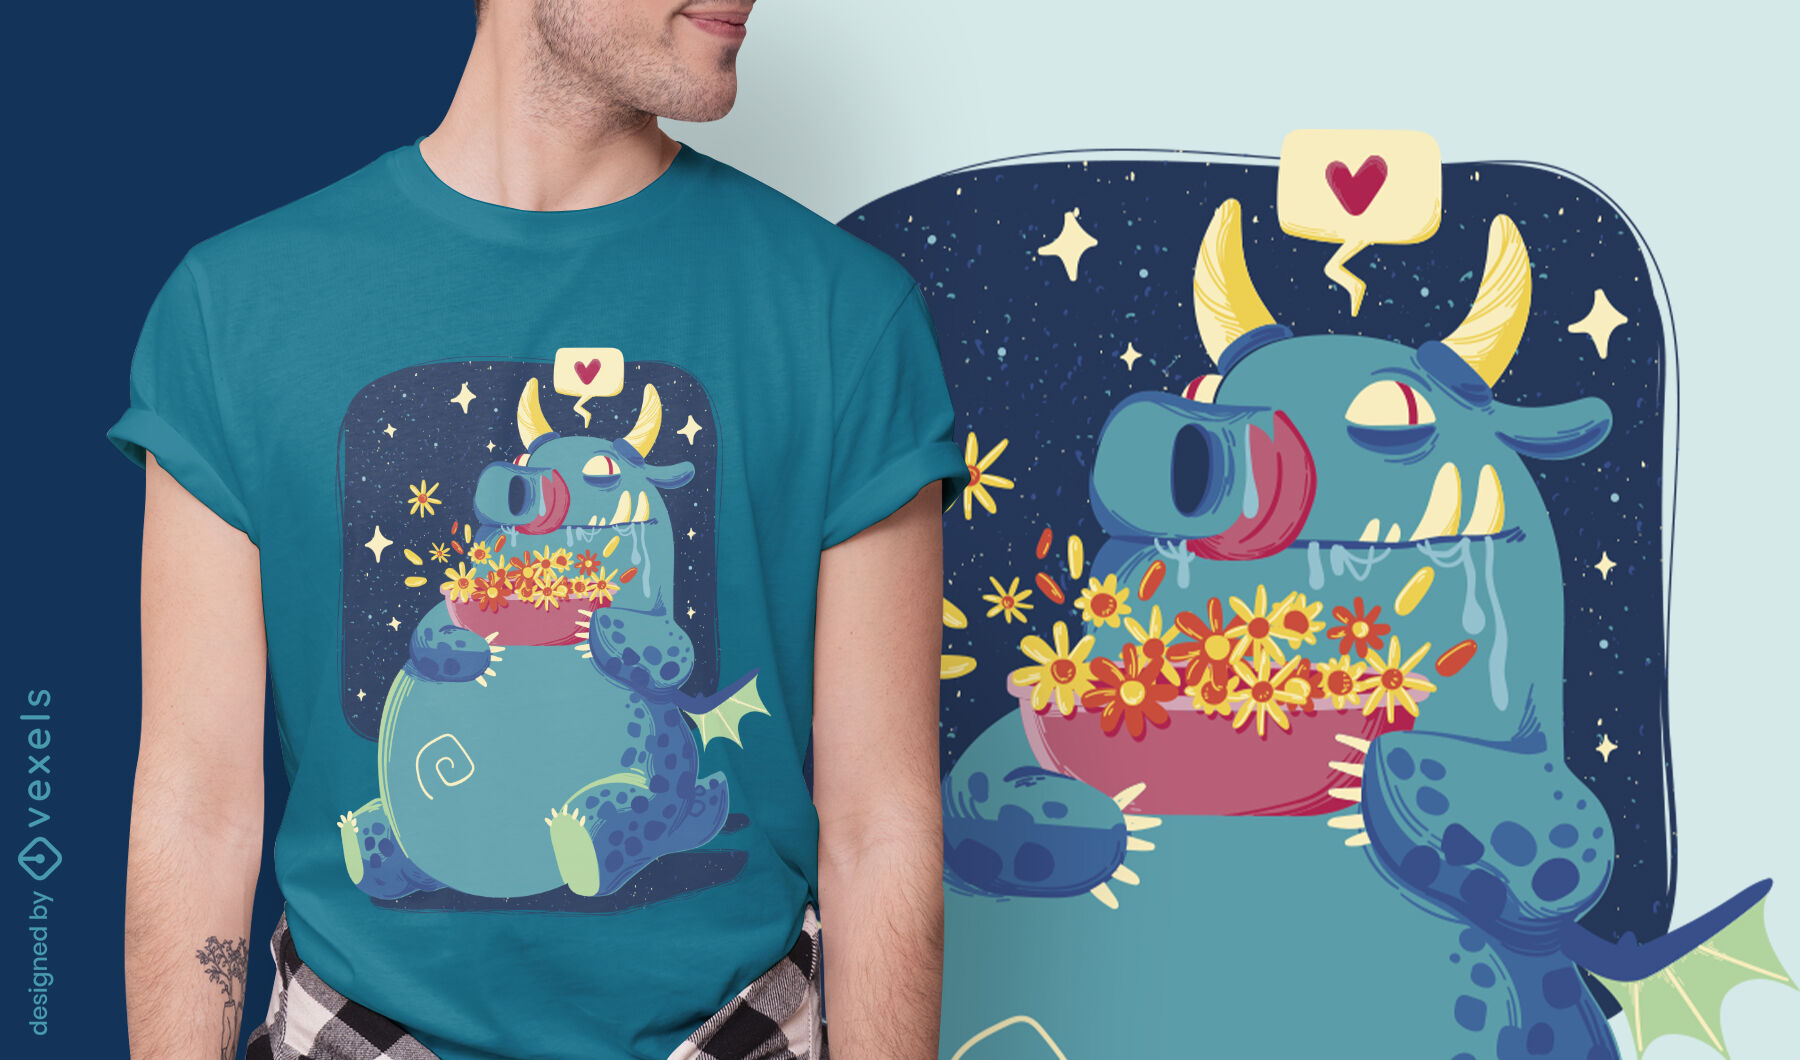 Fairytale dragon with flowers t-shirt design